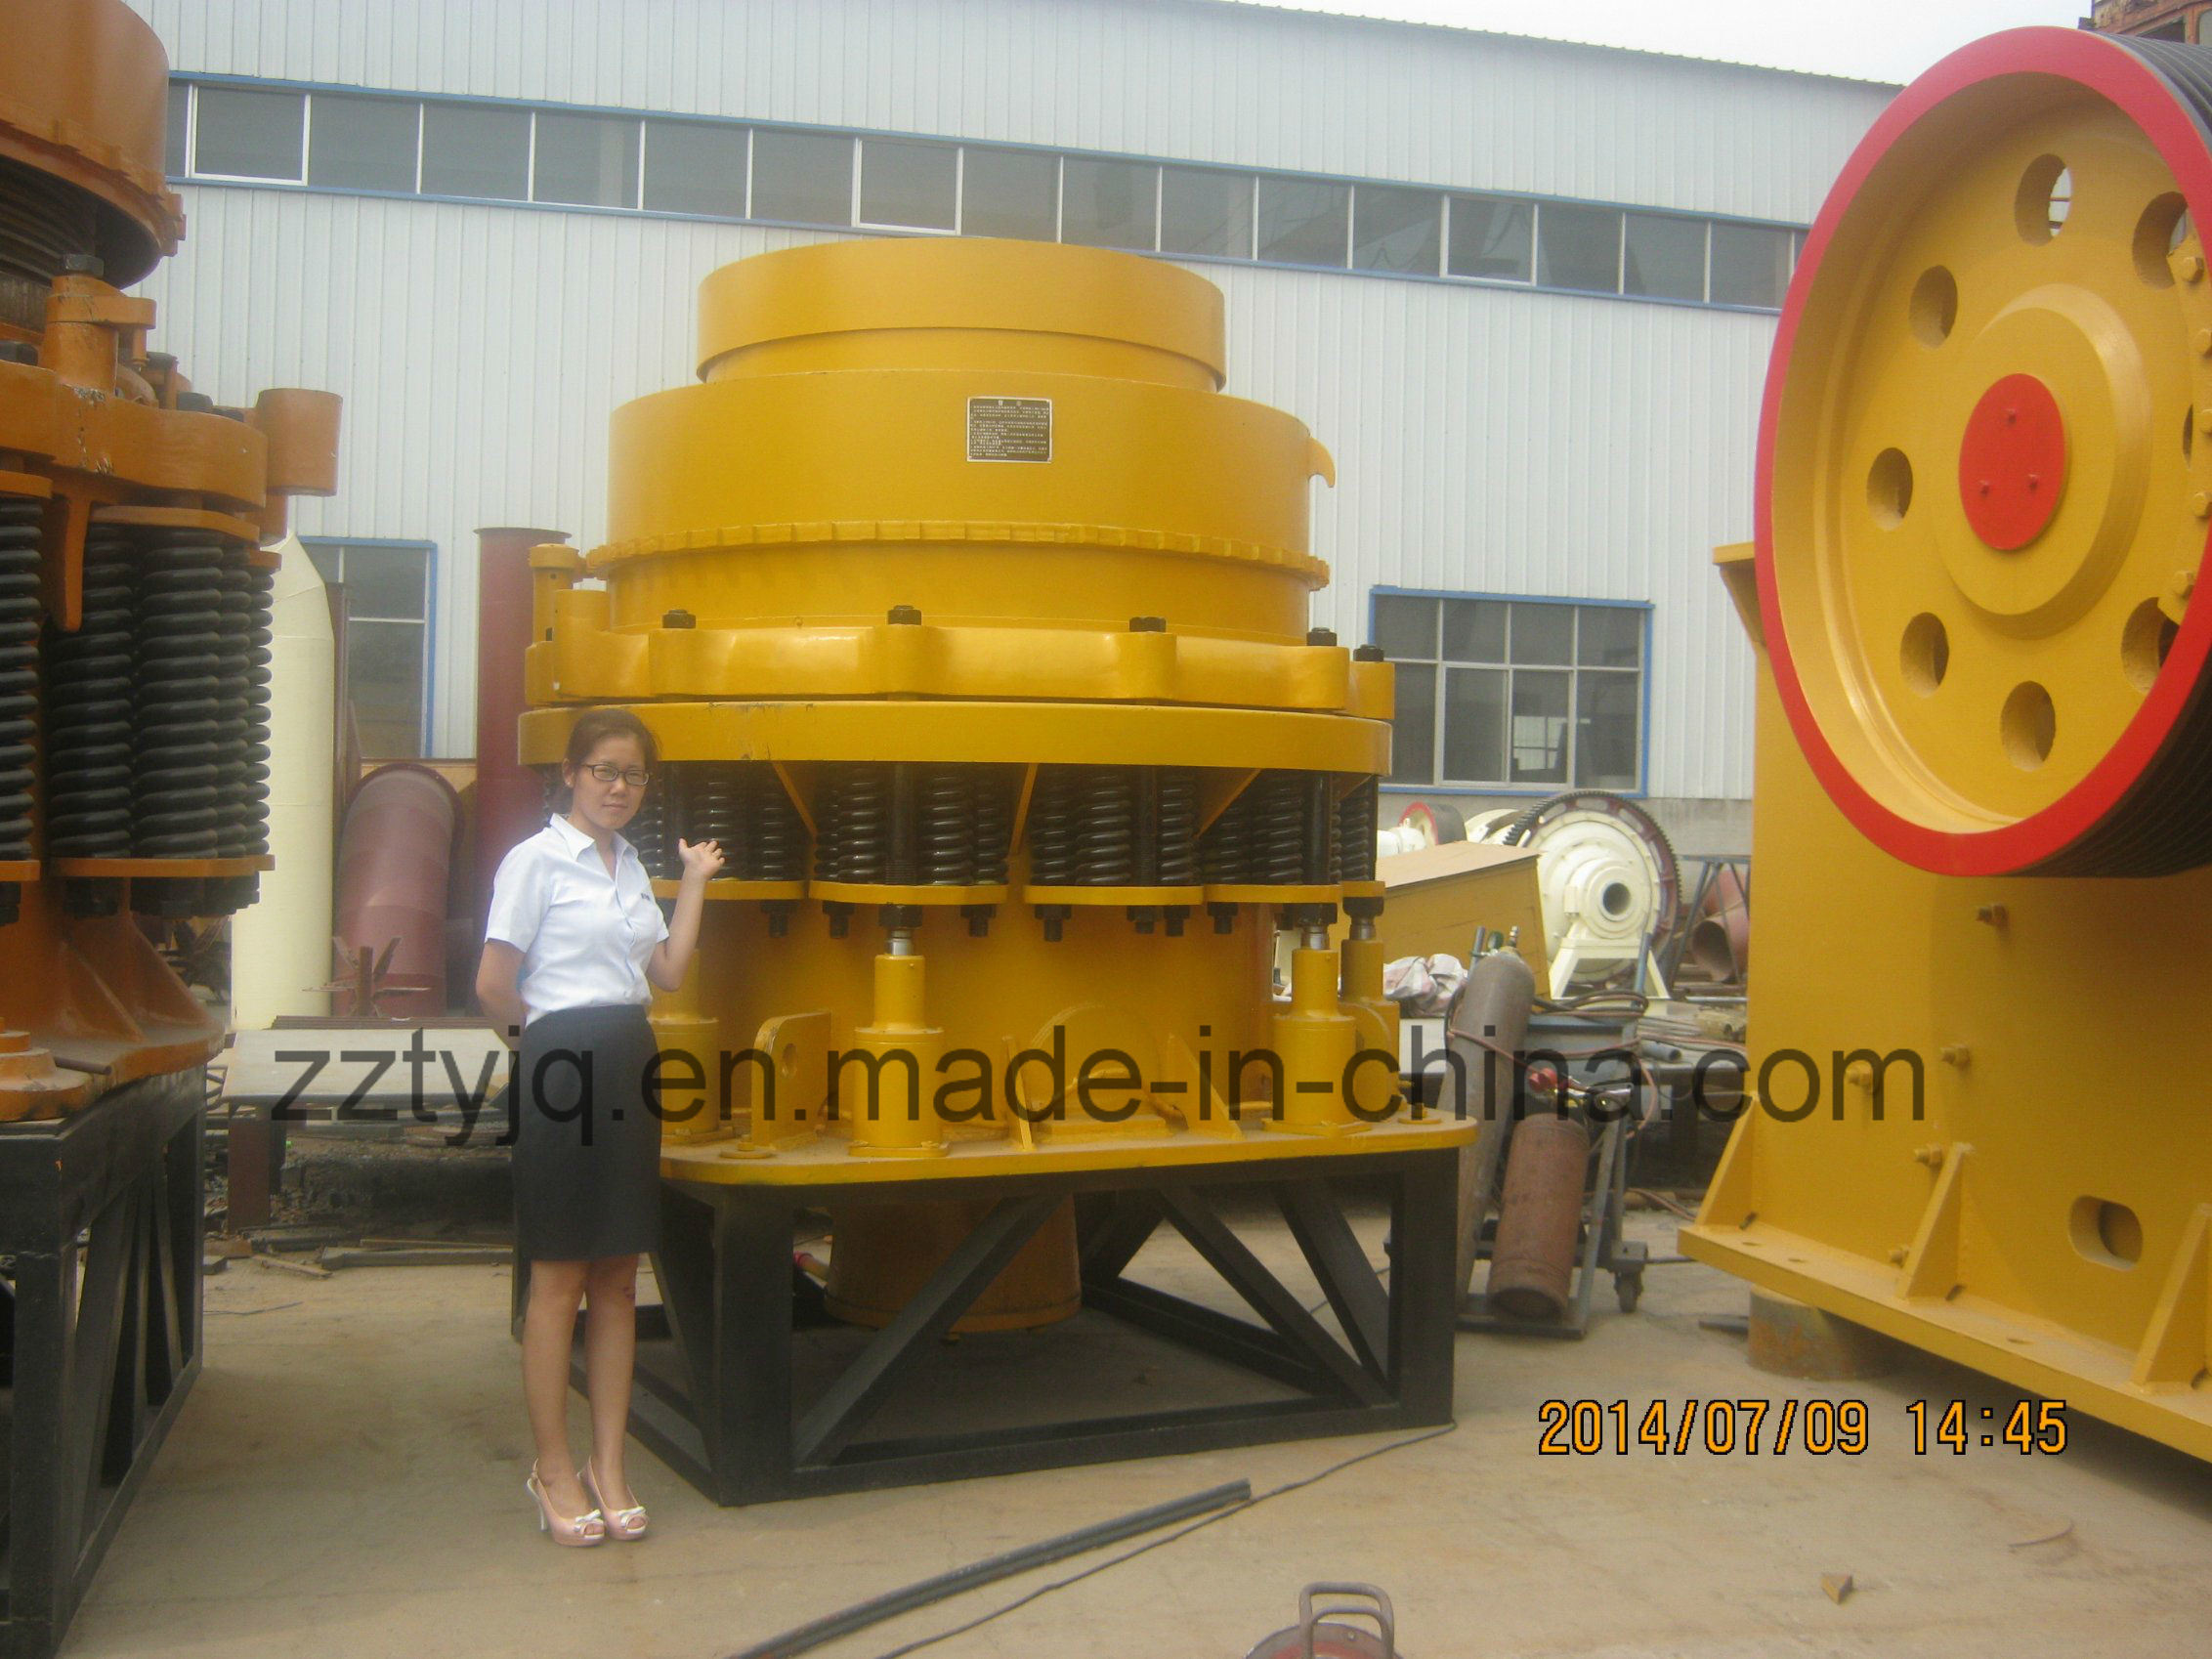 Pyb Pyd Spring Cone Crusher Machine with Low Price